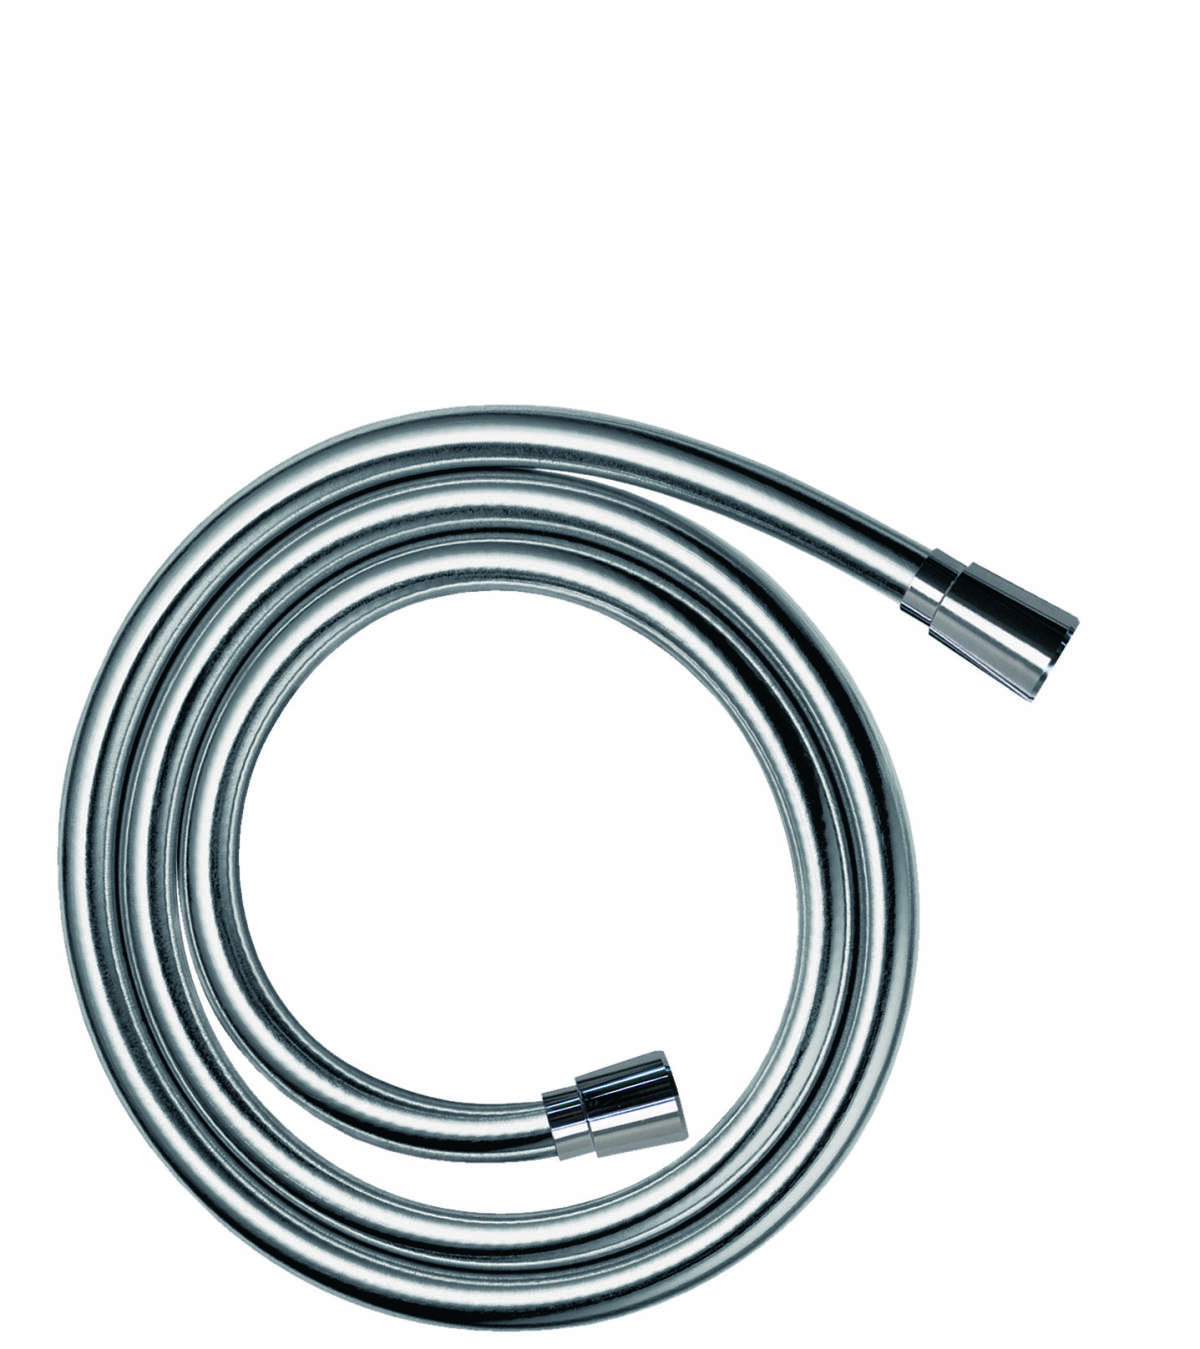 Shower hose 2.00 m, Chrome, 28624000